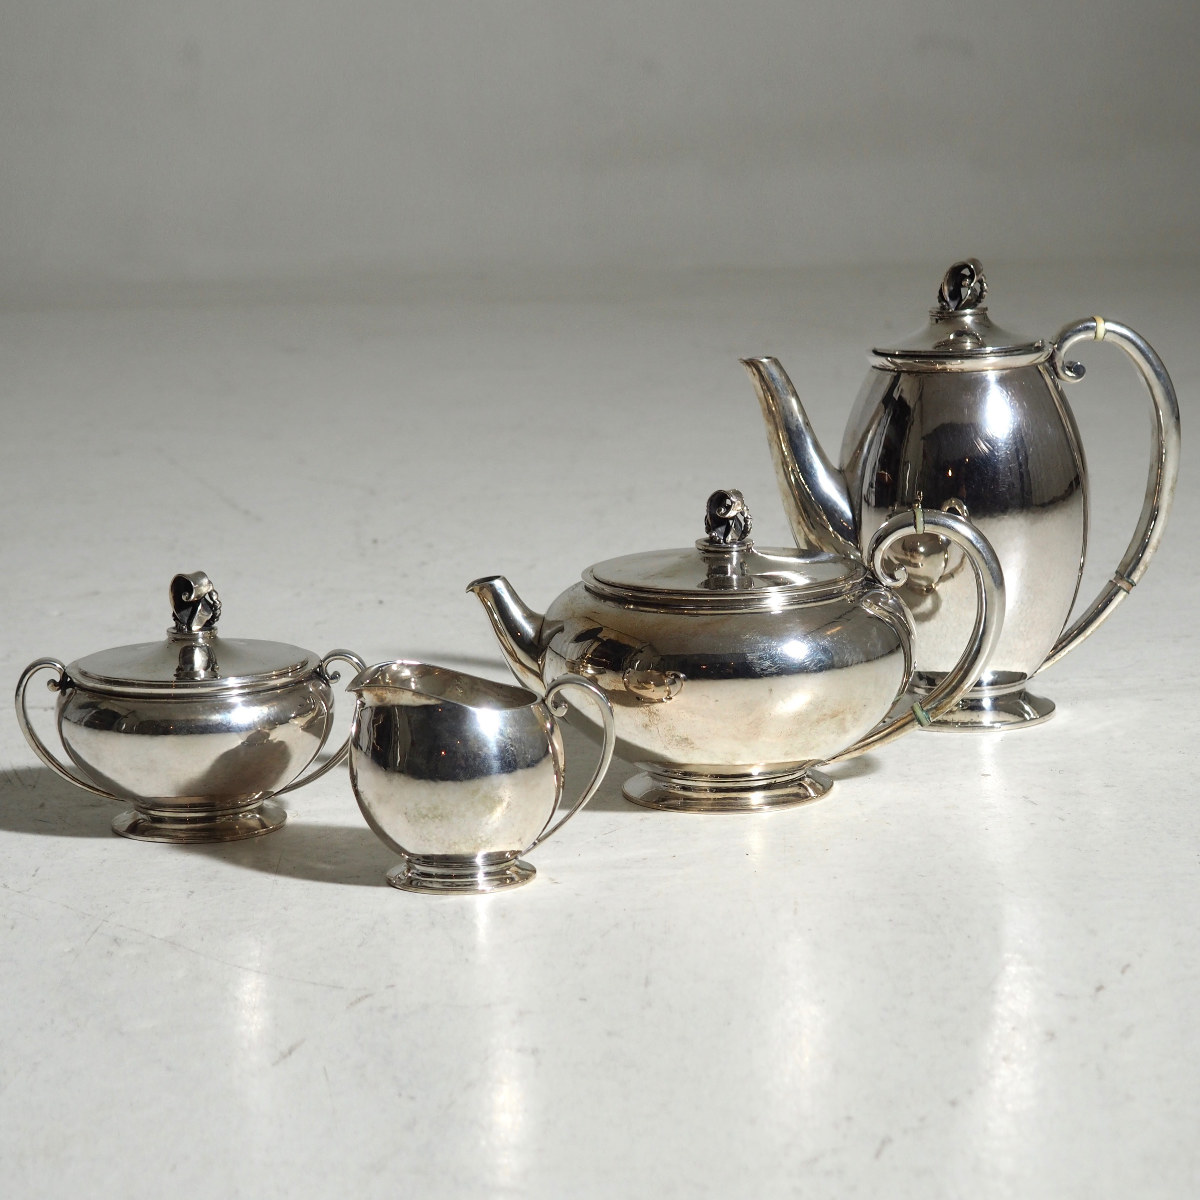 Coffe and thé set, signed 1937. - € 1.400